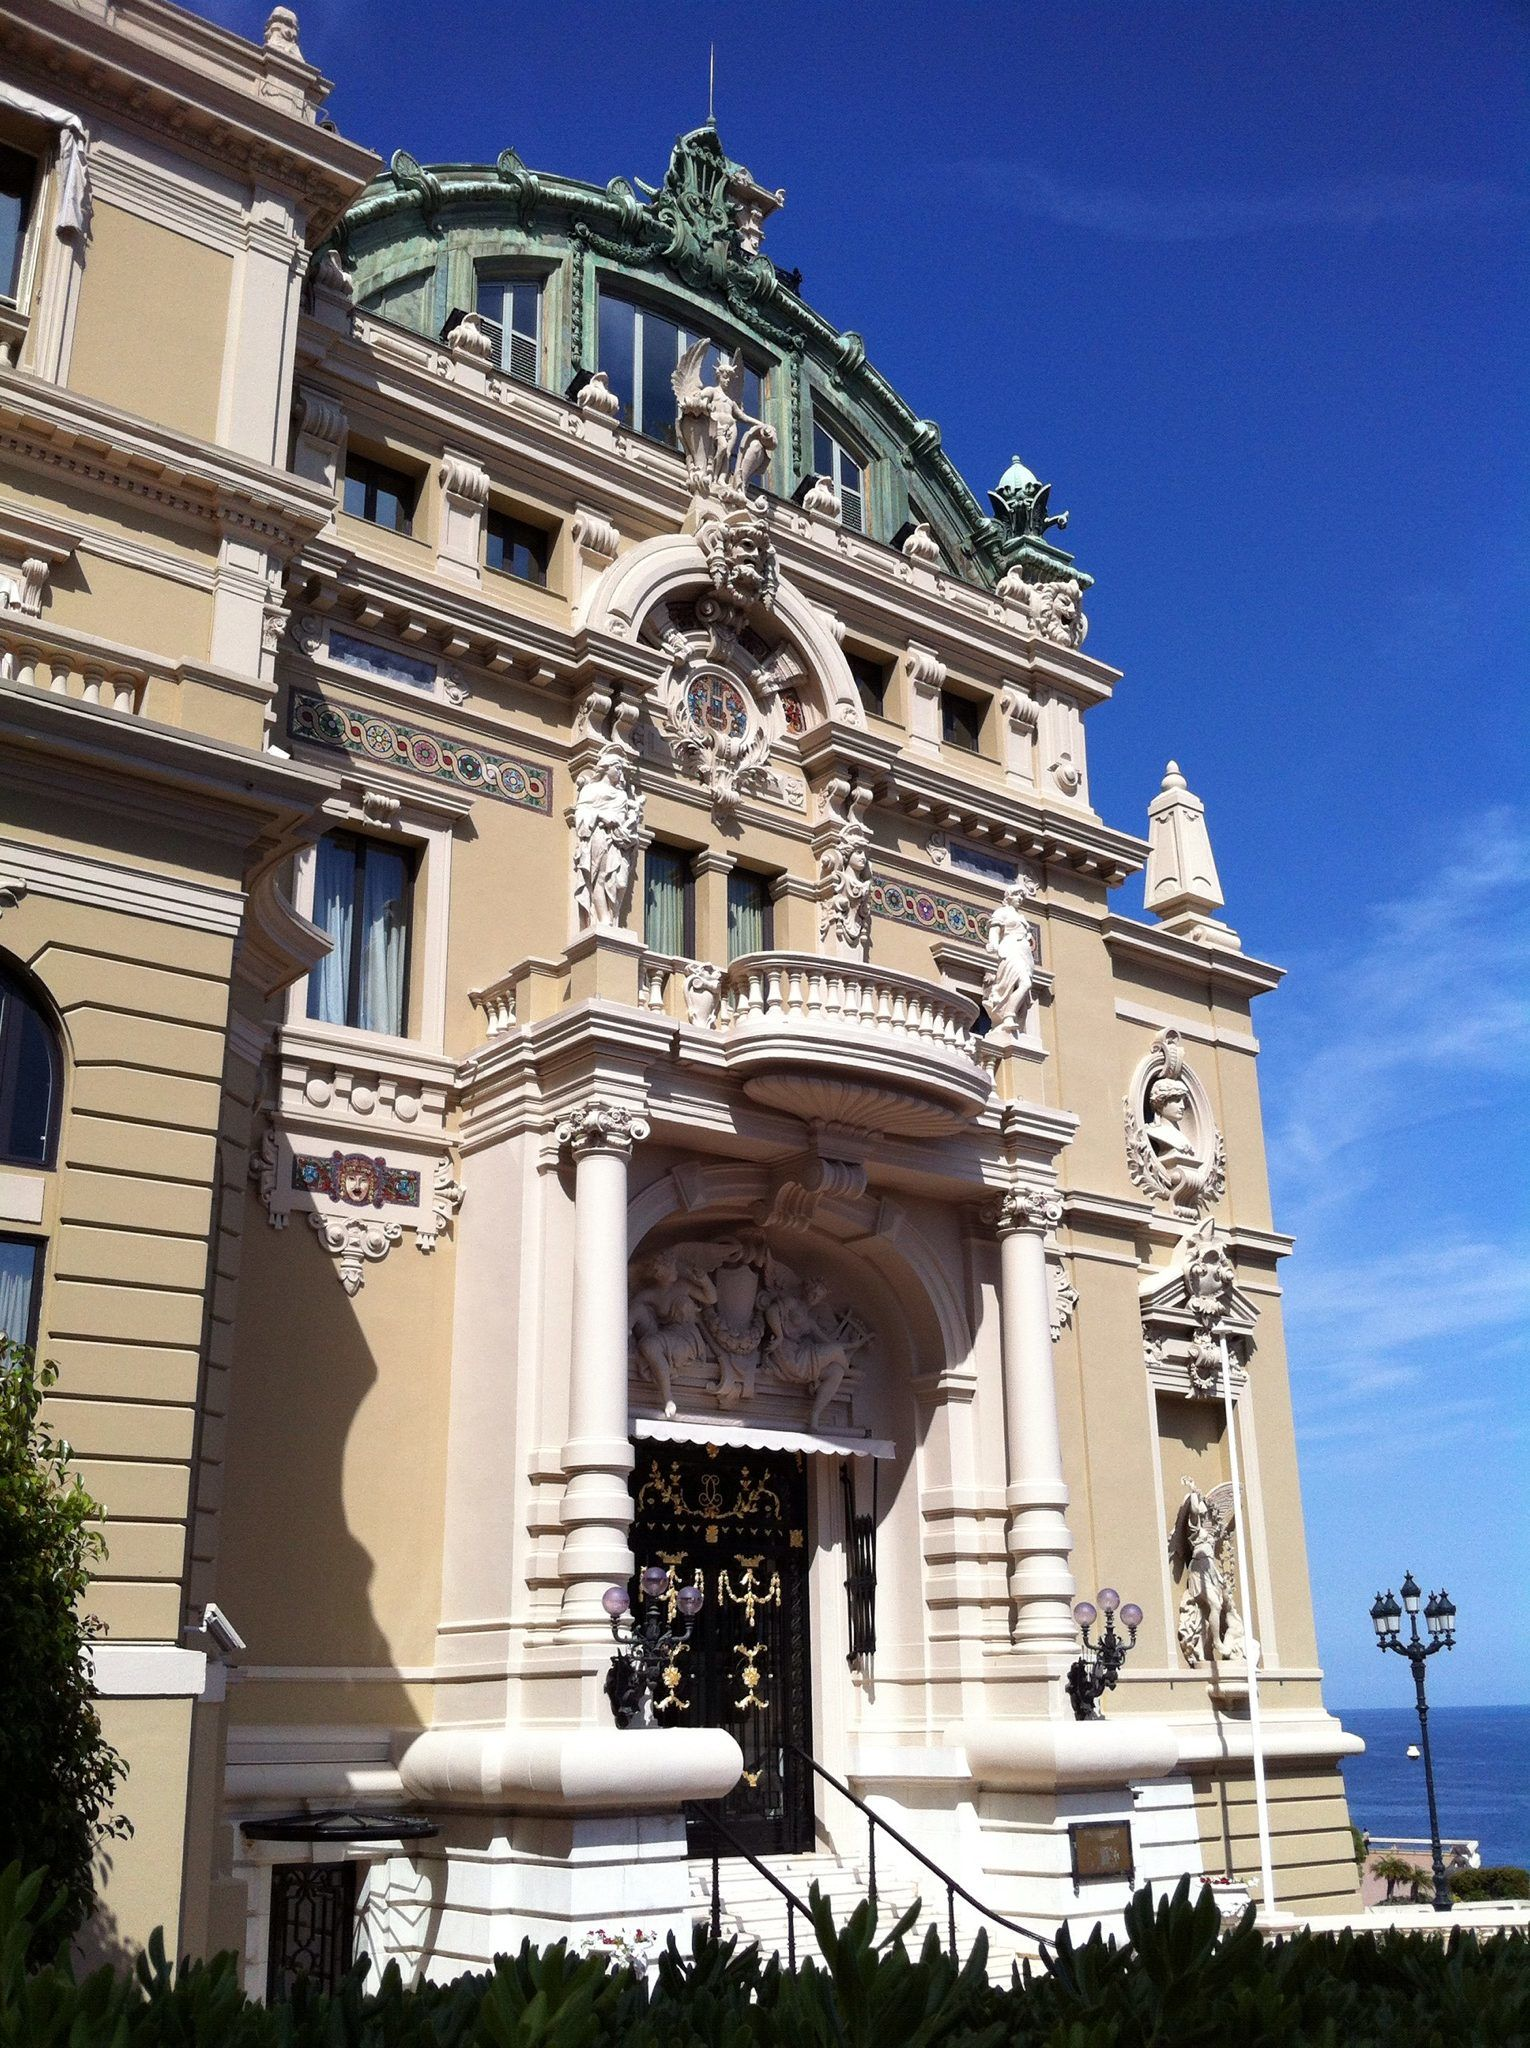 monaco casino is worth a little visit on a day trip from nice